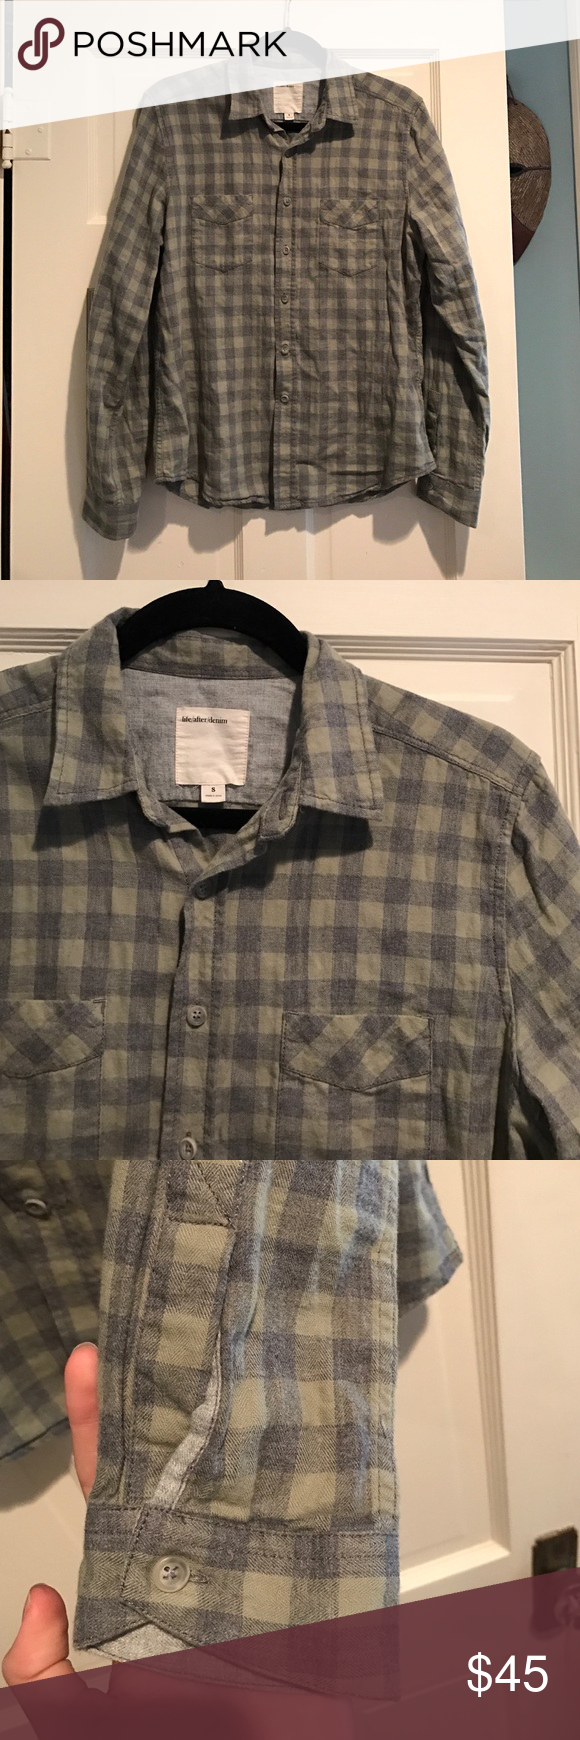 9f049fe772d Fits like a men s small or a woman s medium. Green and grey check. No  flaws. Life After Denim Shirts Casual Button Down Shirts